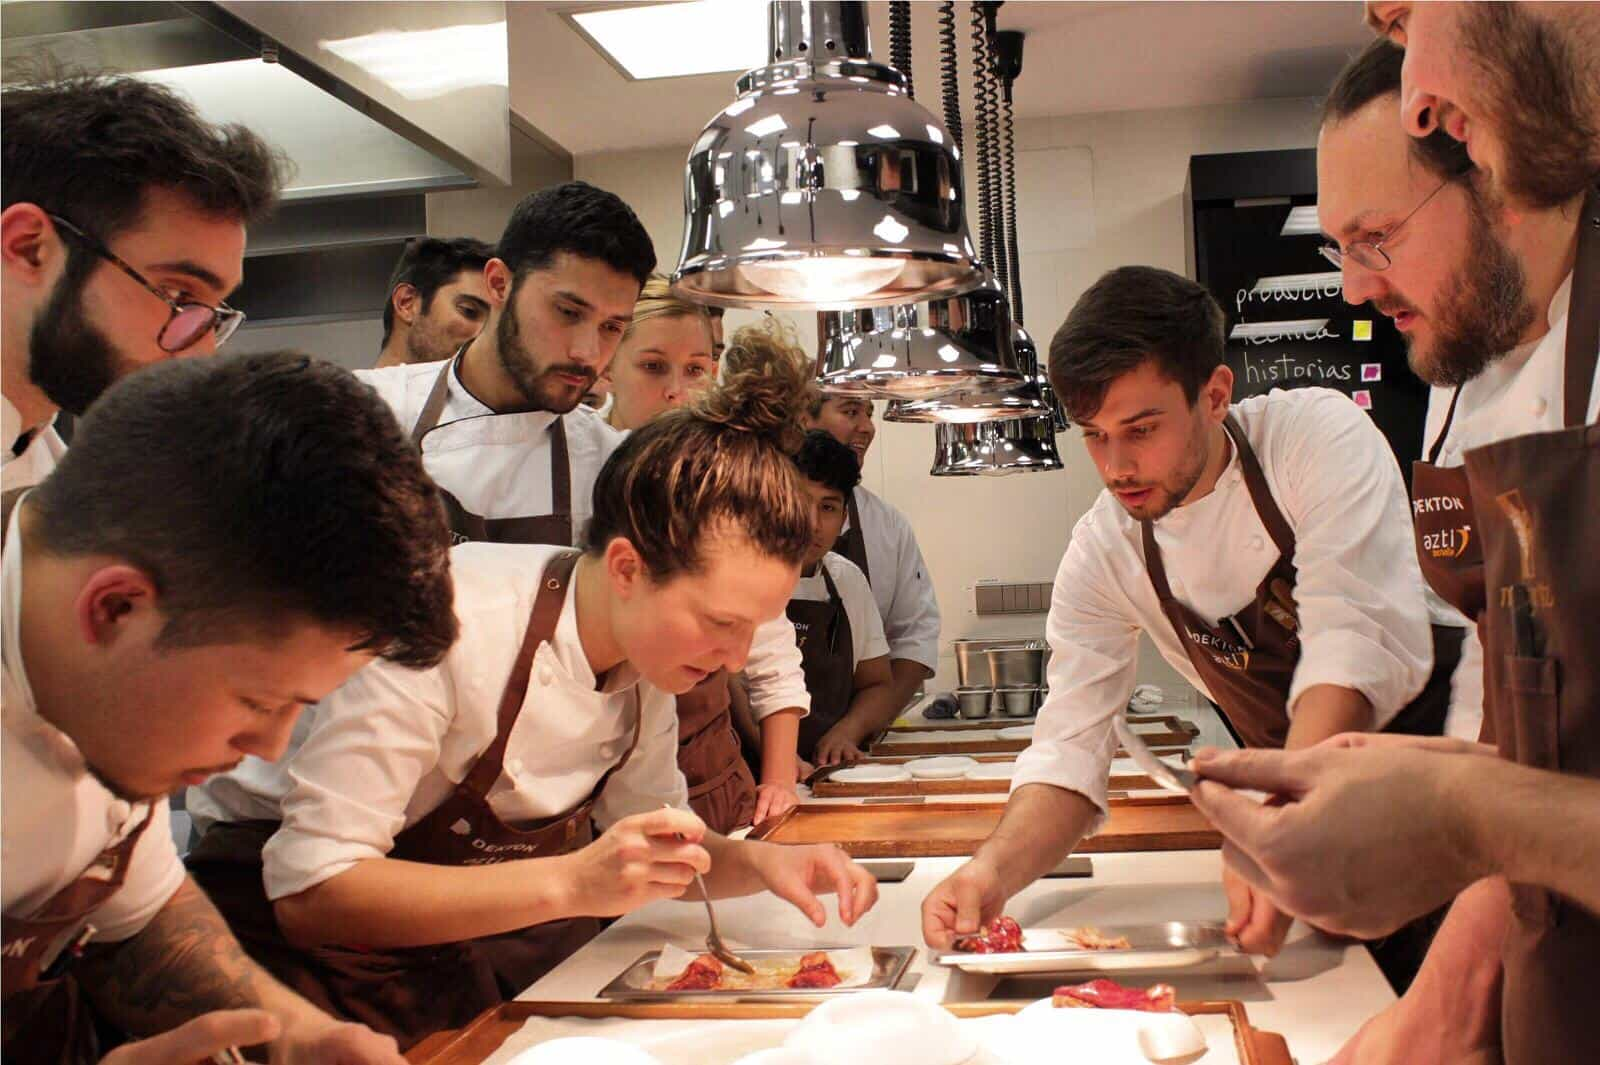 A group of chefs is seen working on gourmet dishes